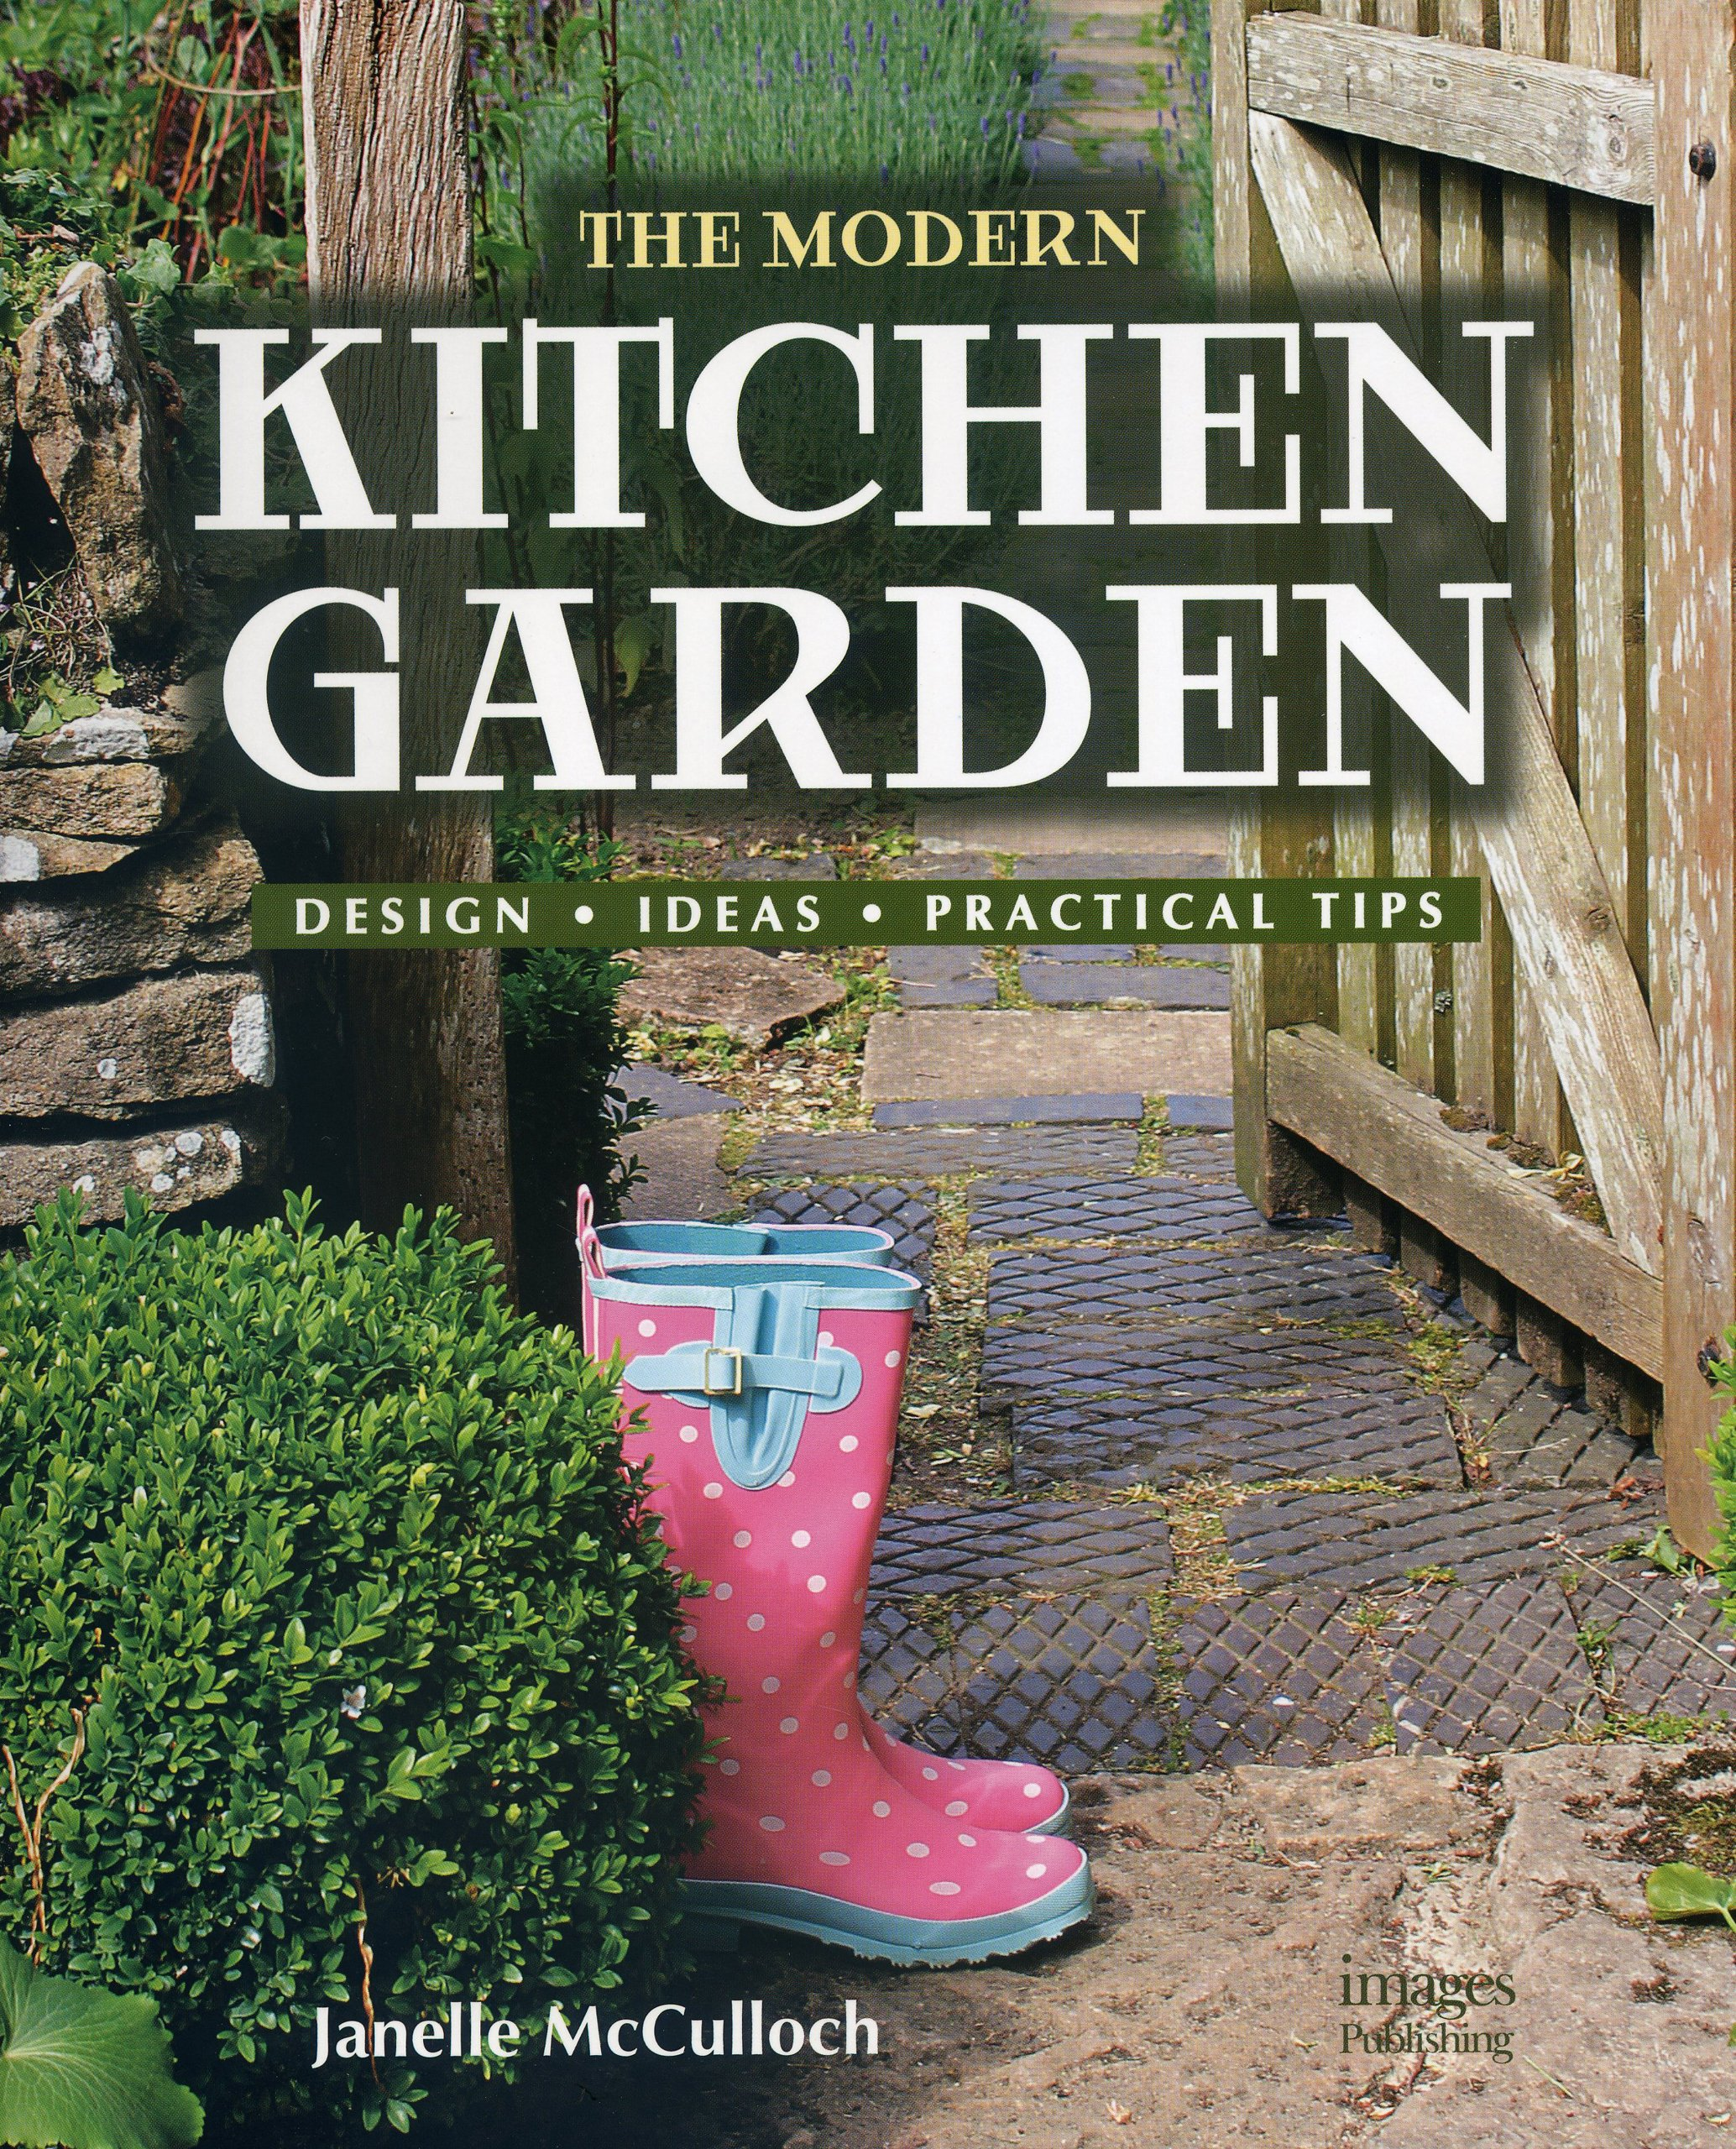 Kitchen Garden Design best 25 small vegetable gardens ideas on pinterest The Modern Kitchen Garden Design Ideas Practical Tips Janelle Mcculloch 9781864704211 Amazoncom Books